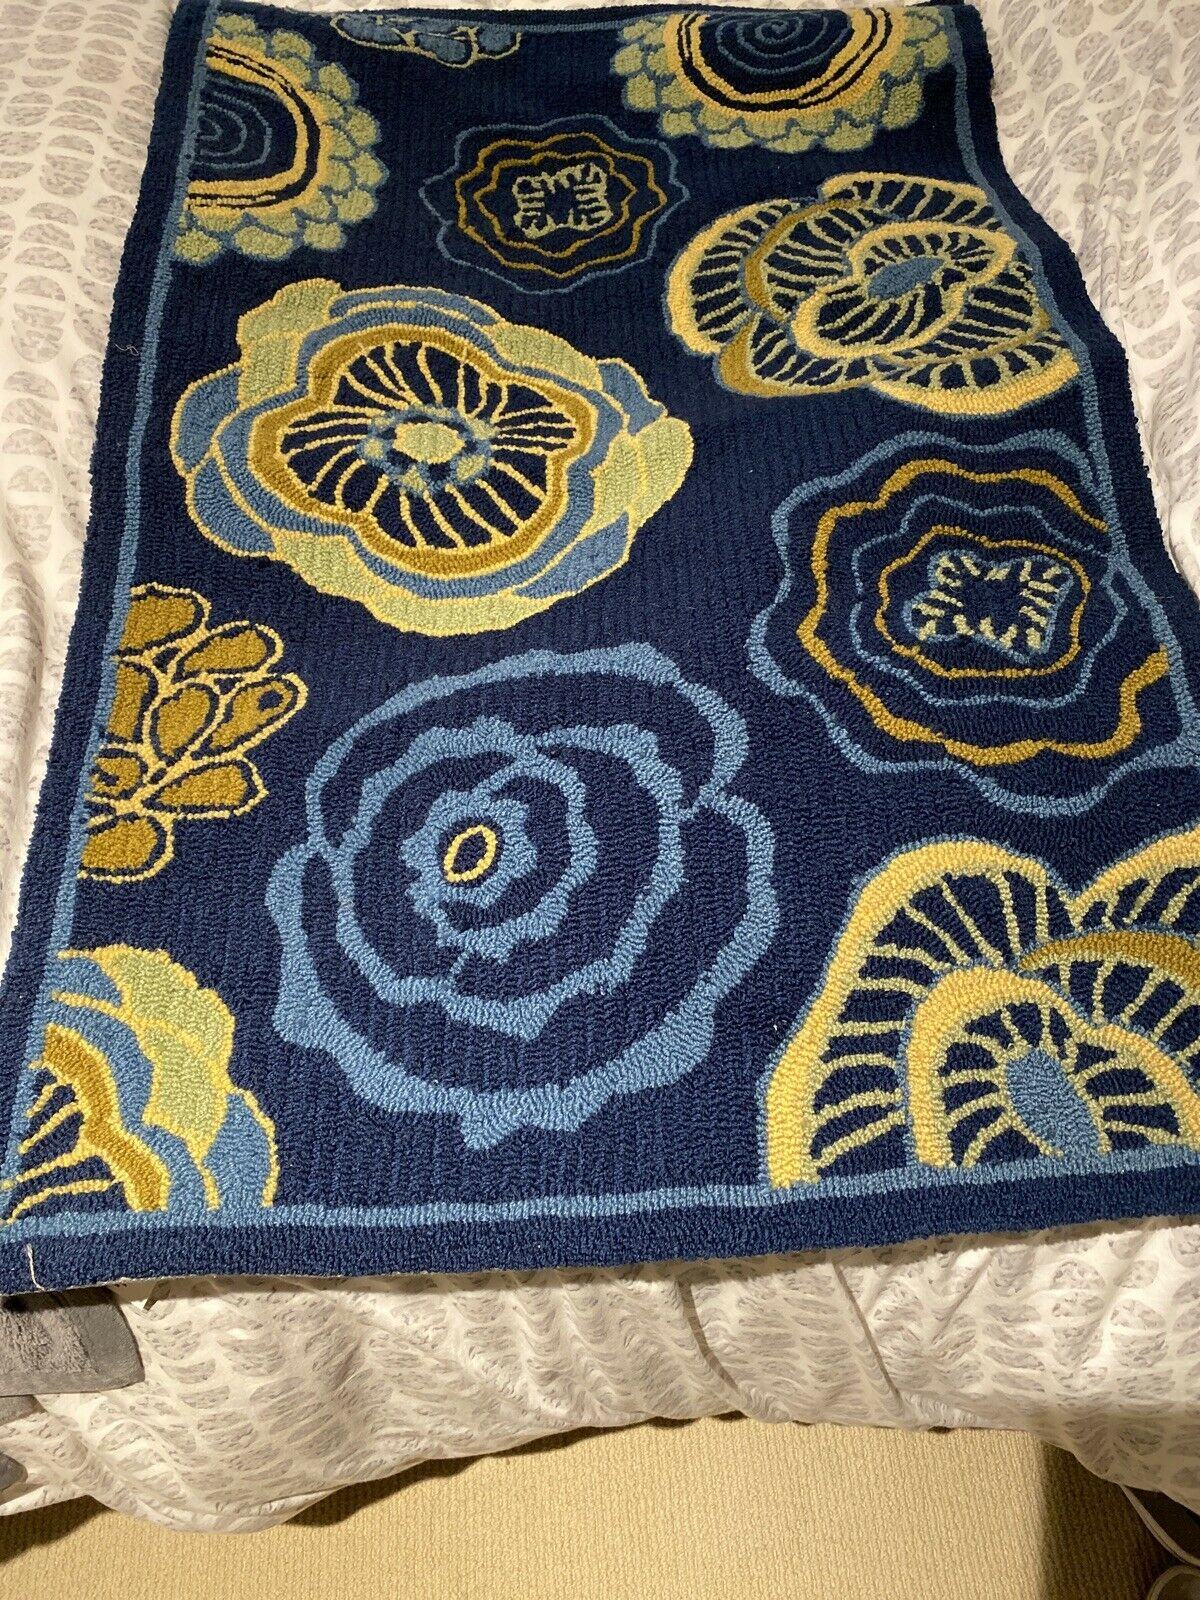 Safavieh Four Seasons Yellow Blue Area Rug Ii For Sale Online Ebay